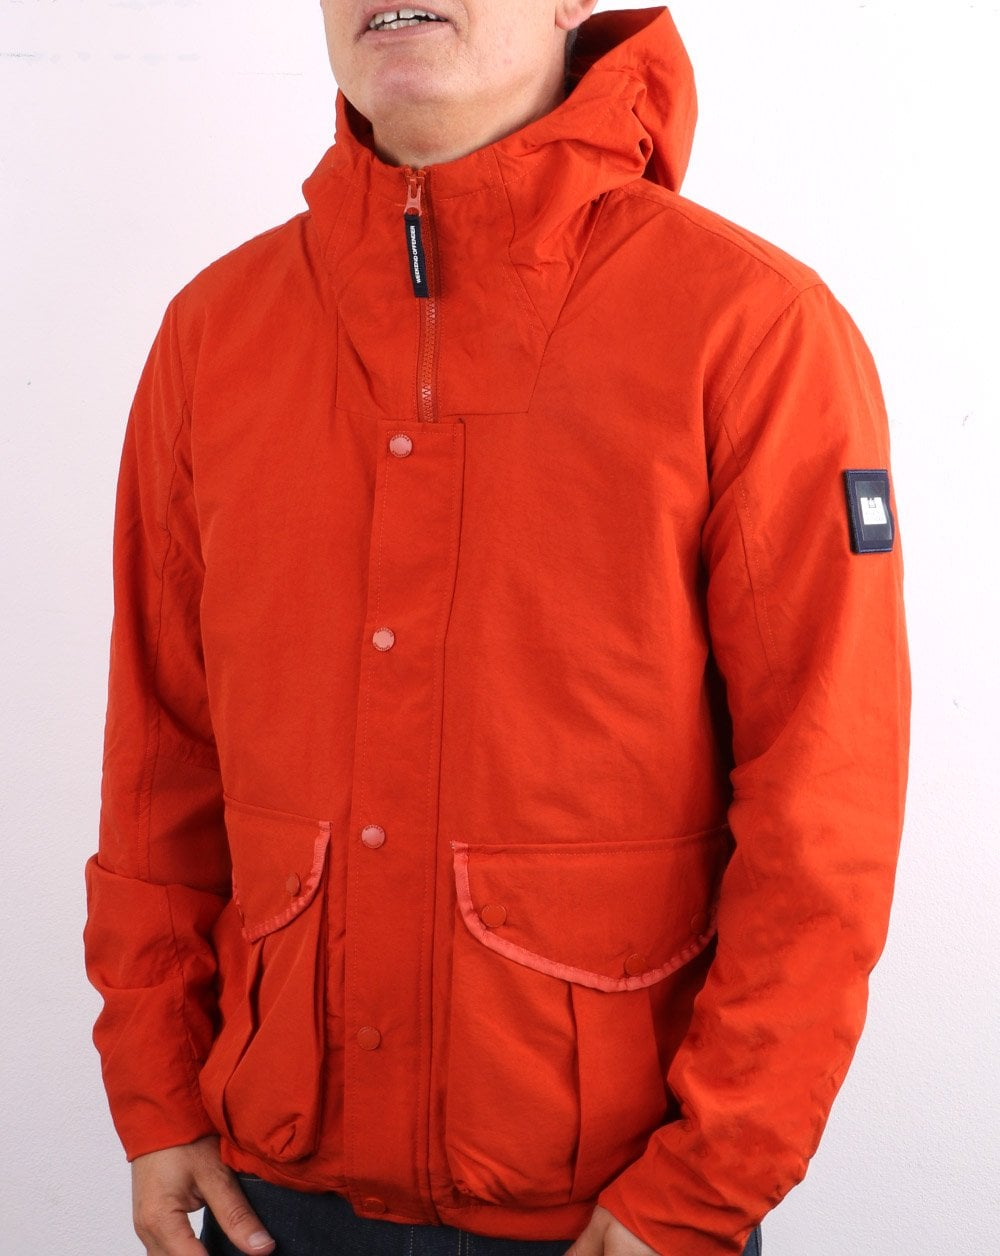 Leo Gregory x Weekend Offender Signature Jacket